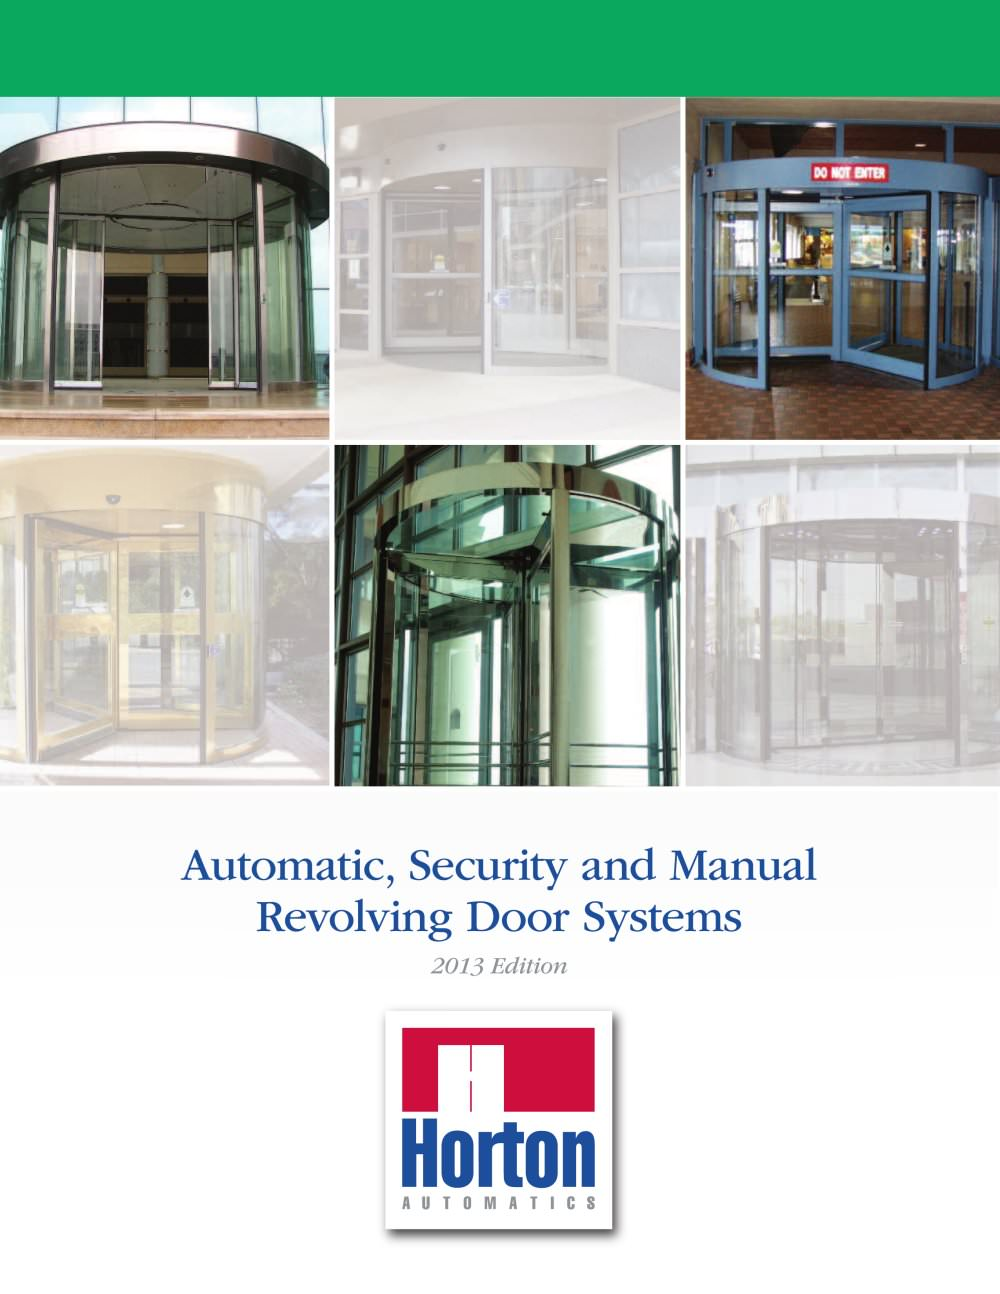 Revolving Door Brochure PDF (4.31 MB) - 1 / 12 Pages